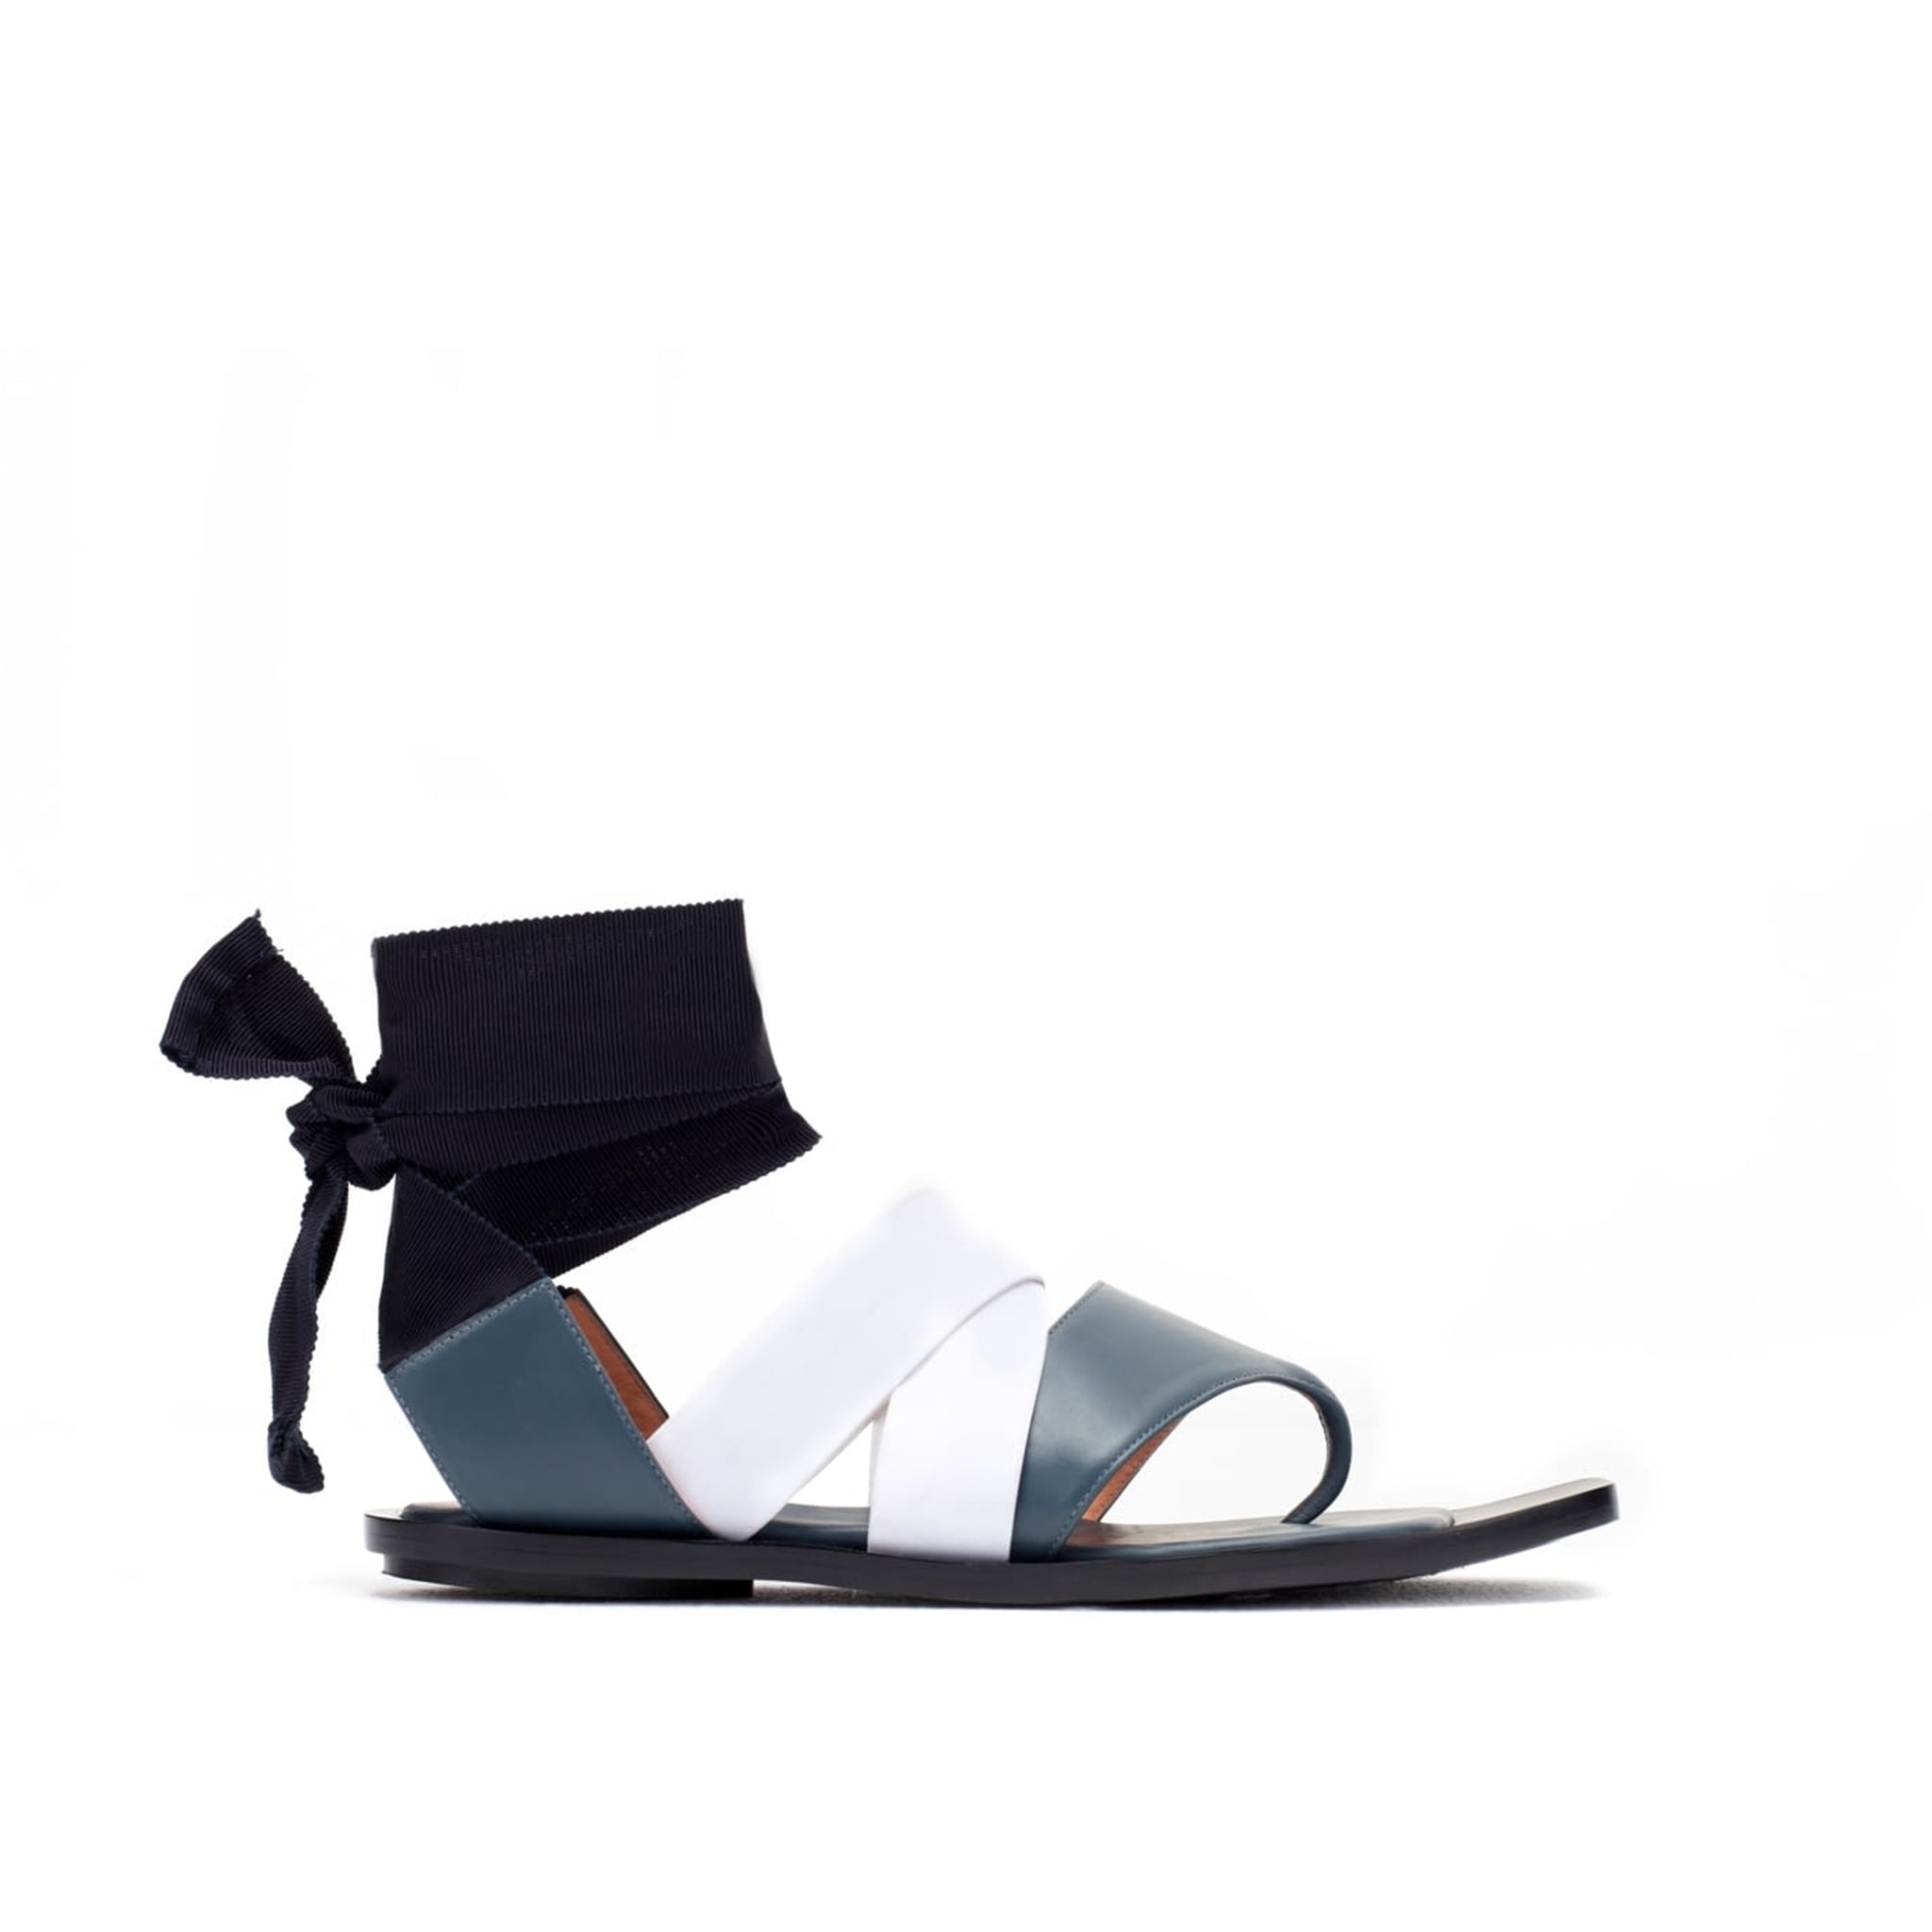 Sandals-MAX MARA SPORTMAX-SHOPATVOI.COM - Luxury Fashion Designer